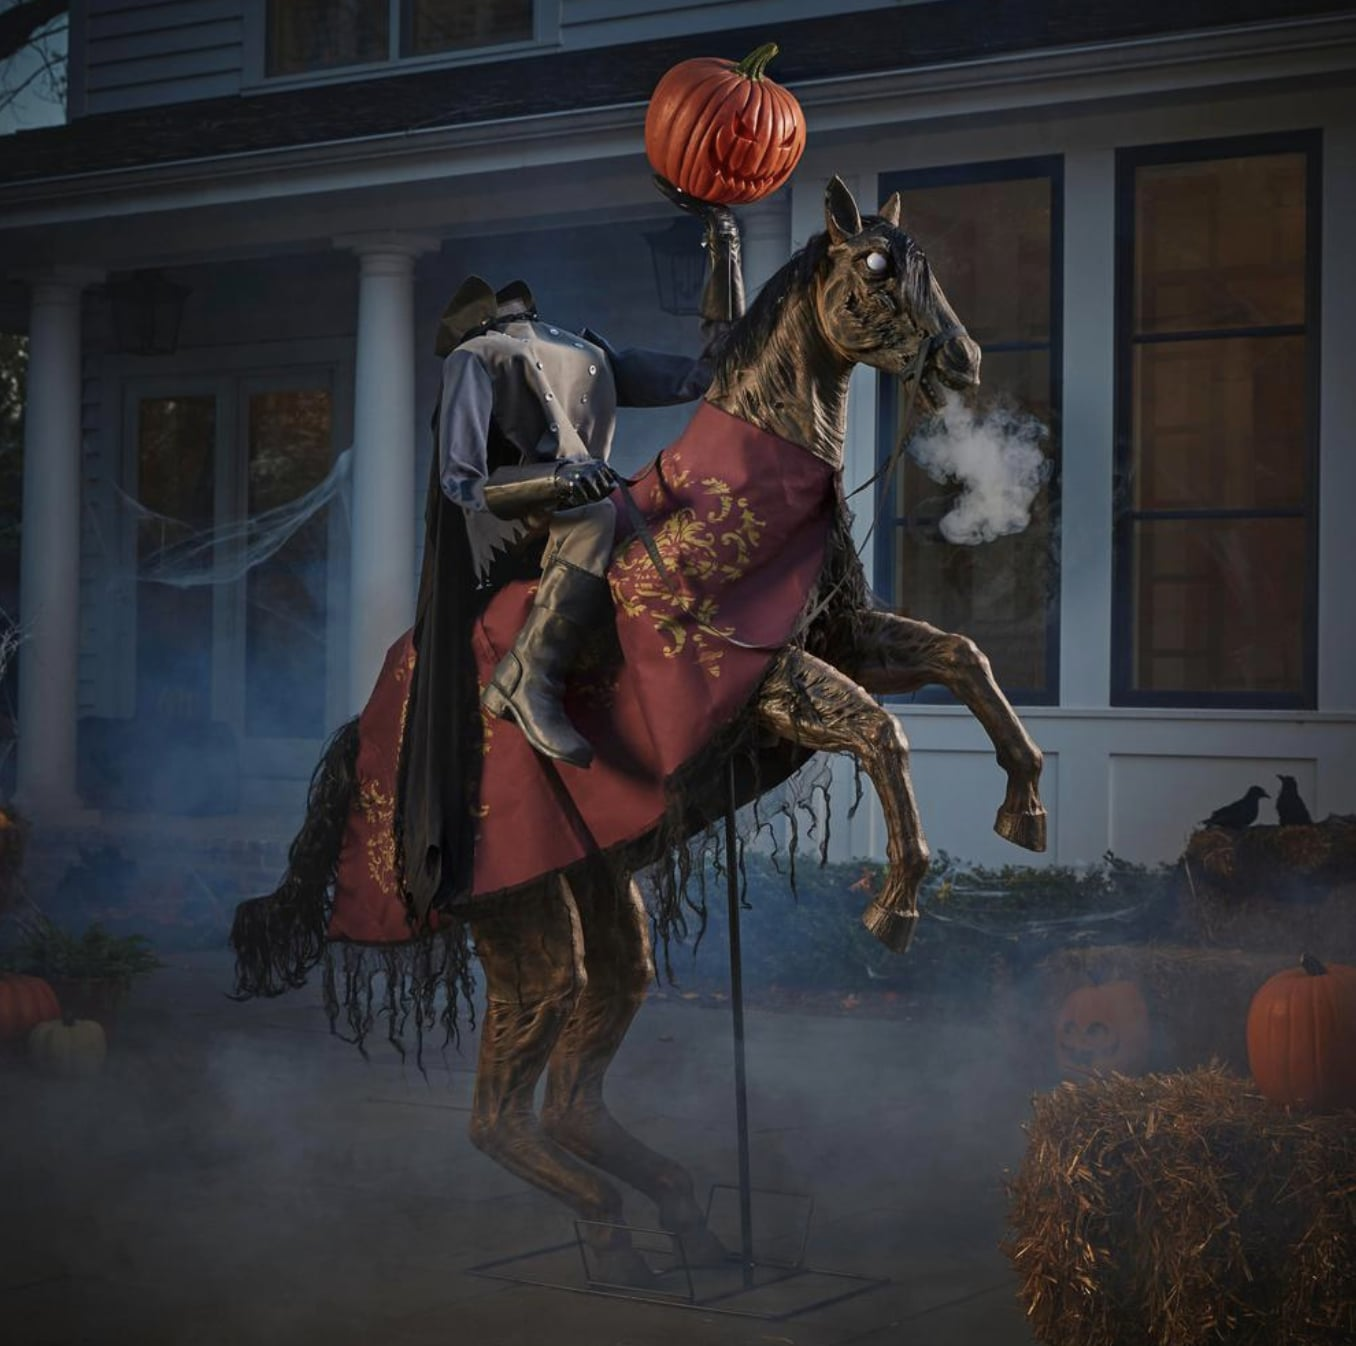 Animated Headless Horseman Icymi Home Depot Has Some Chilling Halloween Decorations Popsugar Home Photo 23